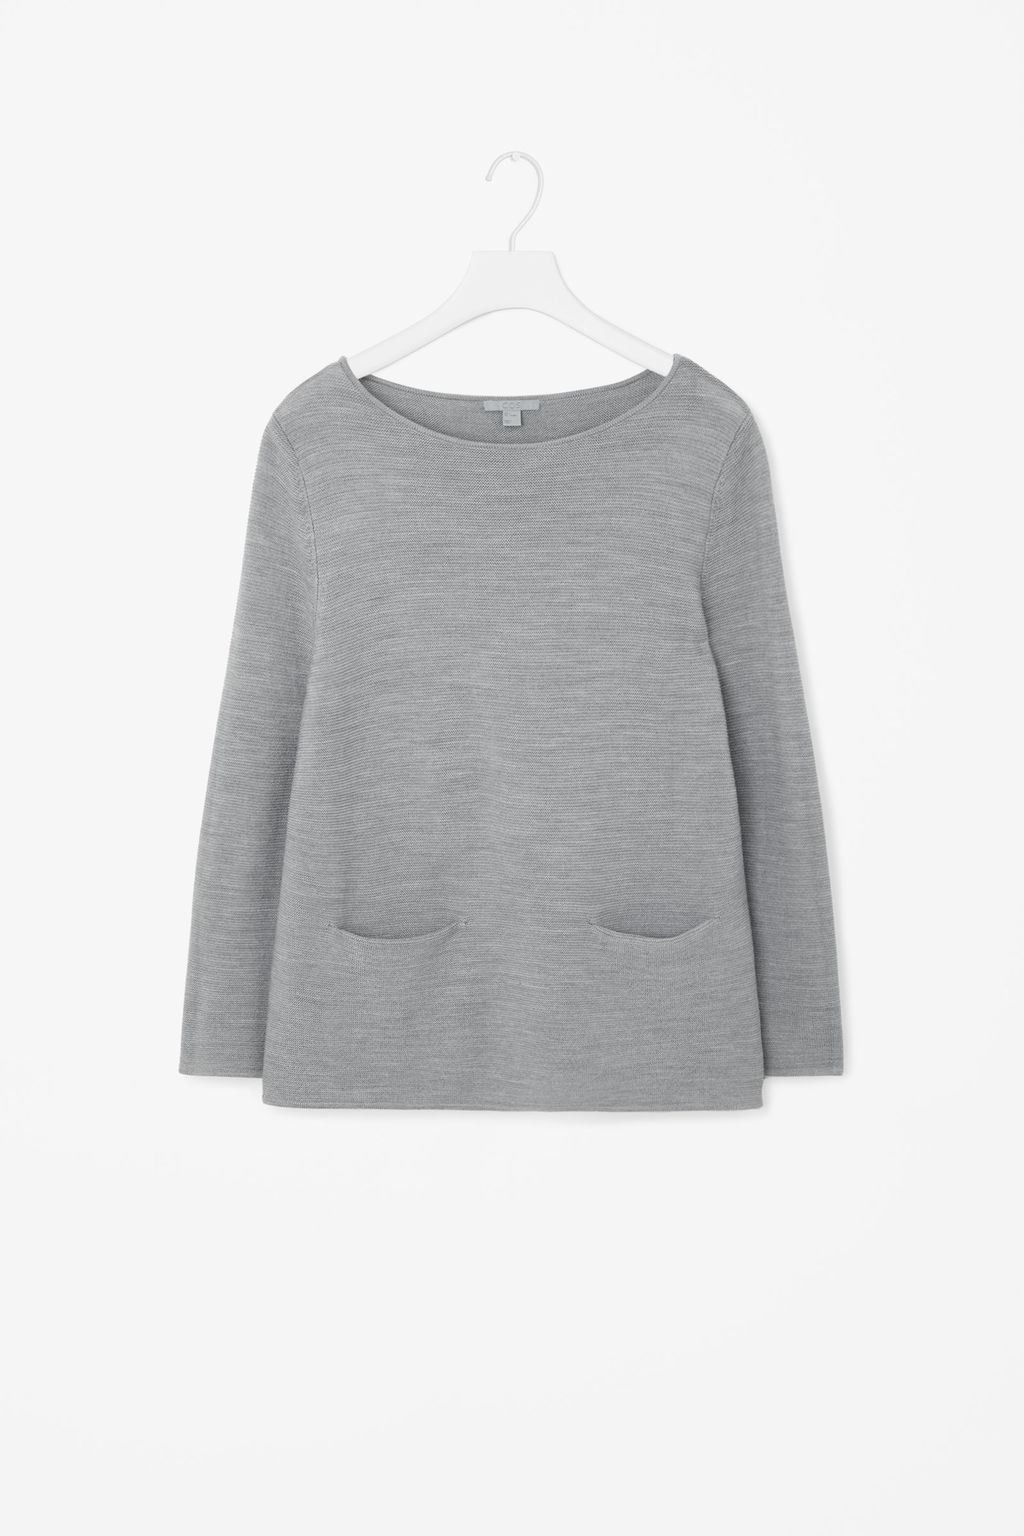 A Line Wool Jumper - neckline: round neck; pattern: plain; length: below the bottom; hip detail: front pockets at hip; style: standard; predominant colour: mid grey; occasions: casual; fibres: wool - 100%; fit: slim fit; sleeve length: long sleeve; sleeve style: standard; texture group: knits/crochet; pattern type: fabric; season: s/s 2016